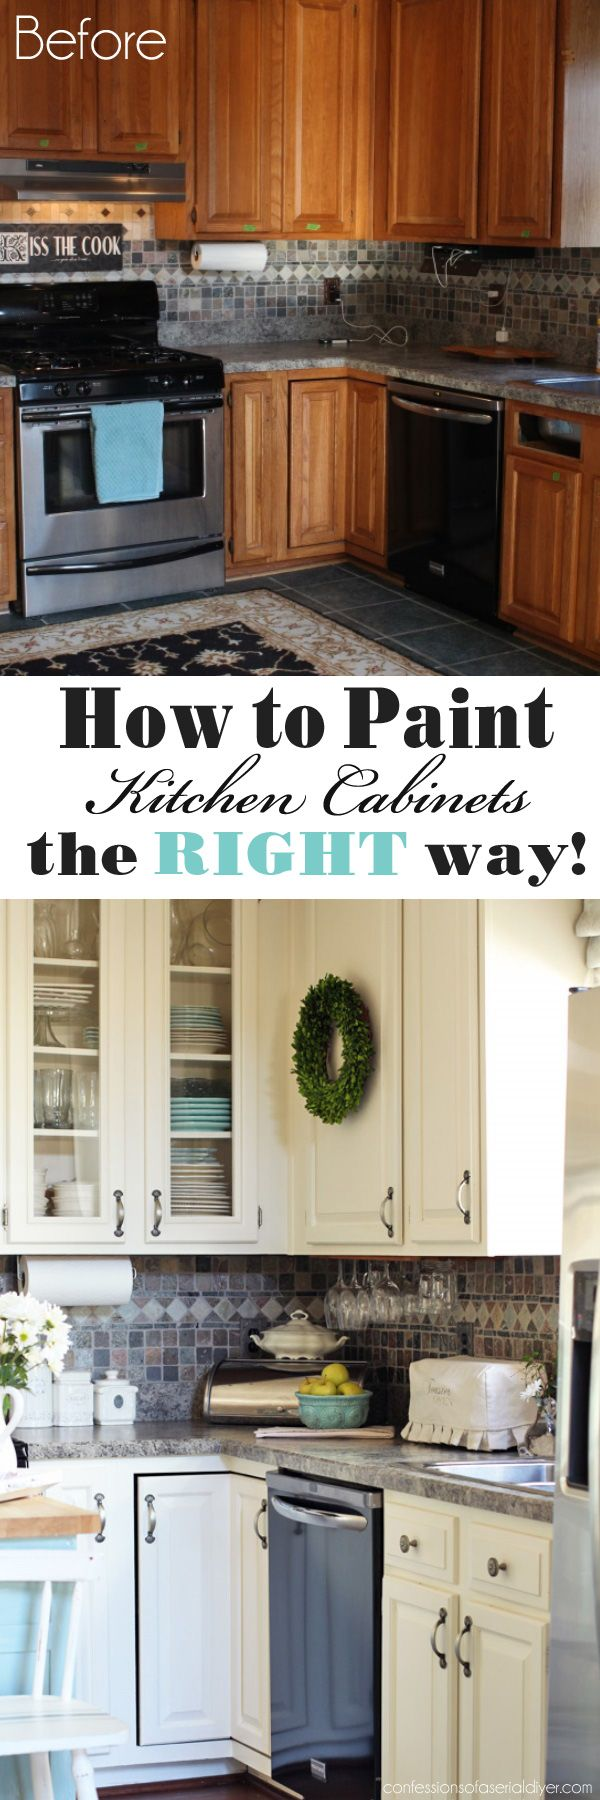 top 25+ best diy kitchen cabinets ideas on pinterest | diy kitchen